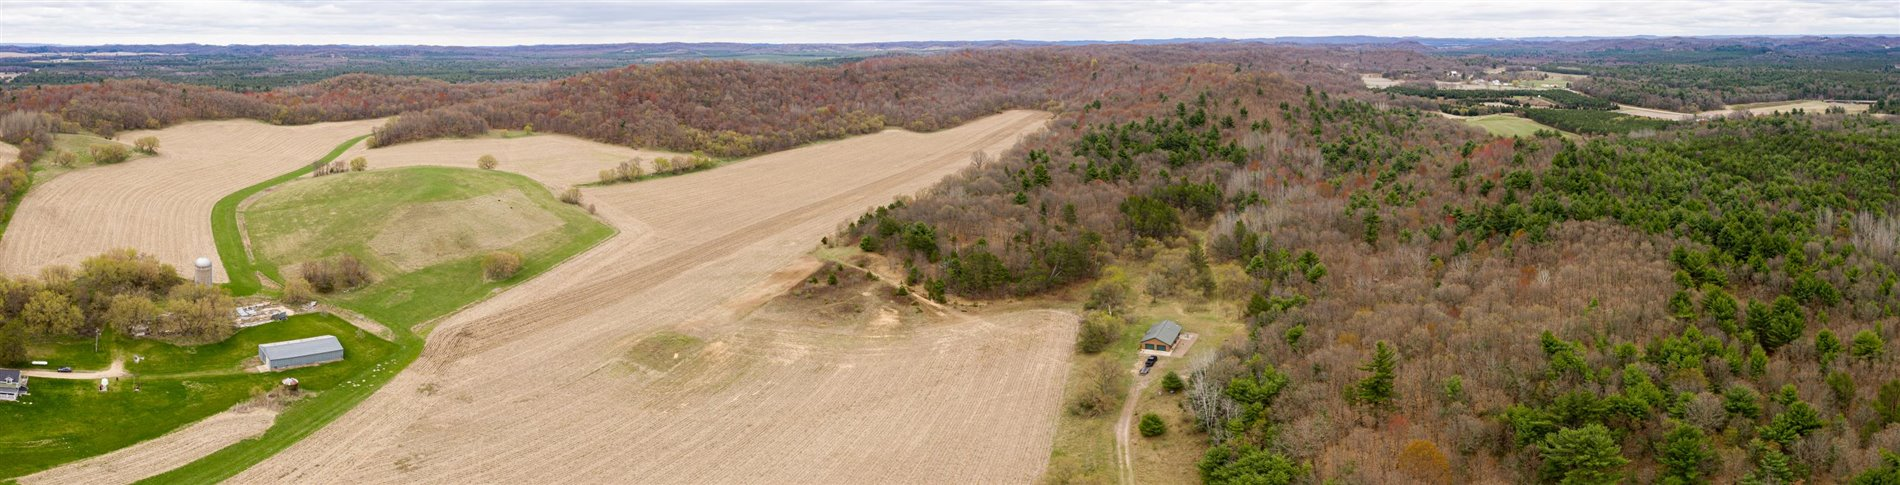 153 +/- Acres of Prime Hunting and Ag Land in Monroe County